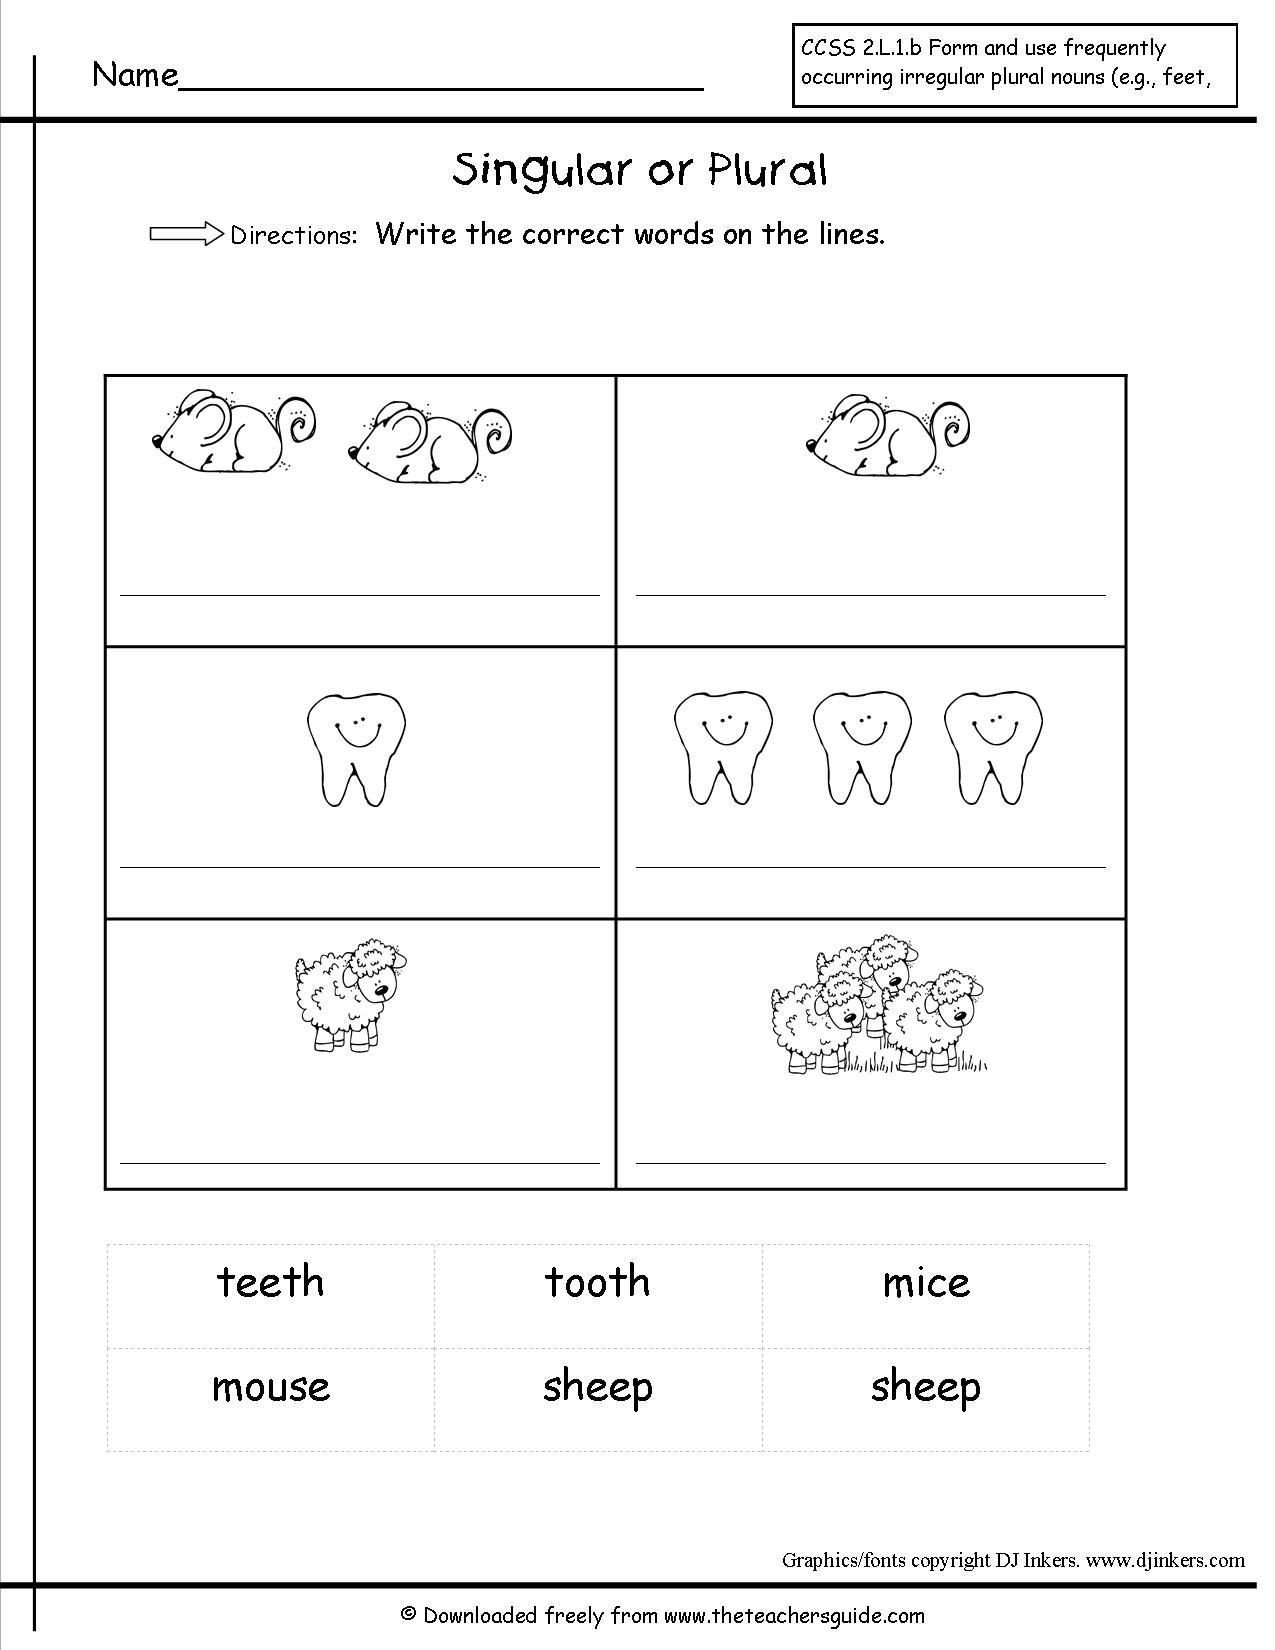 Free Irregular Plural Nouns Worksheet Irregular Plural Nouns Worksheet